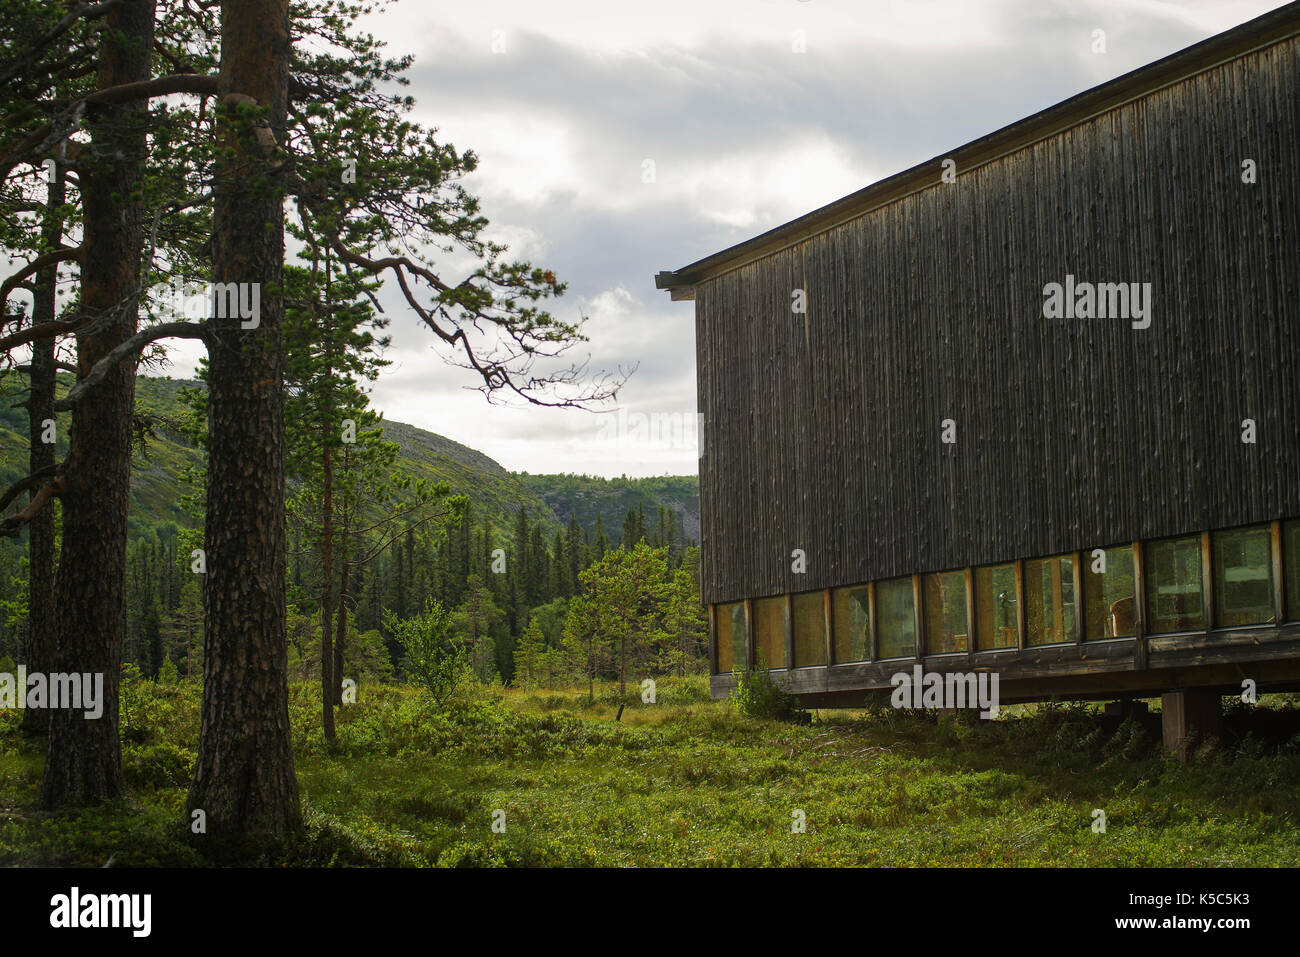 Visitor center in the swedish mountains with beautiful architecture located at the national park Fulufjället in northern Dalarna. - Stock Image